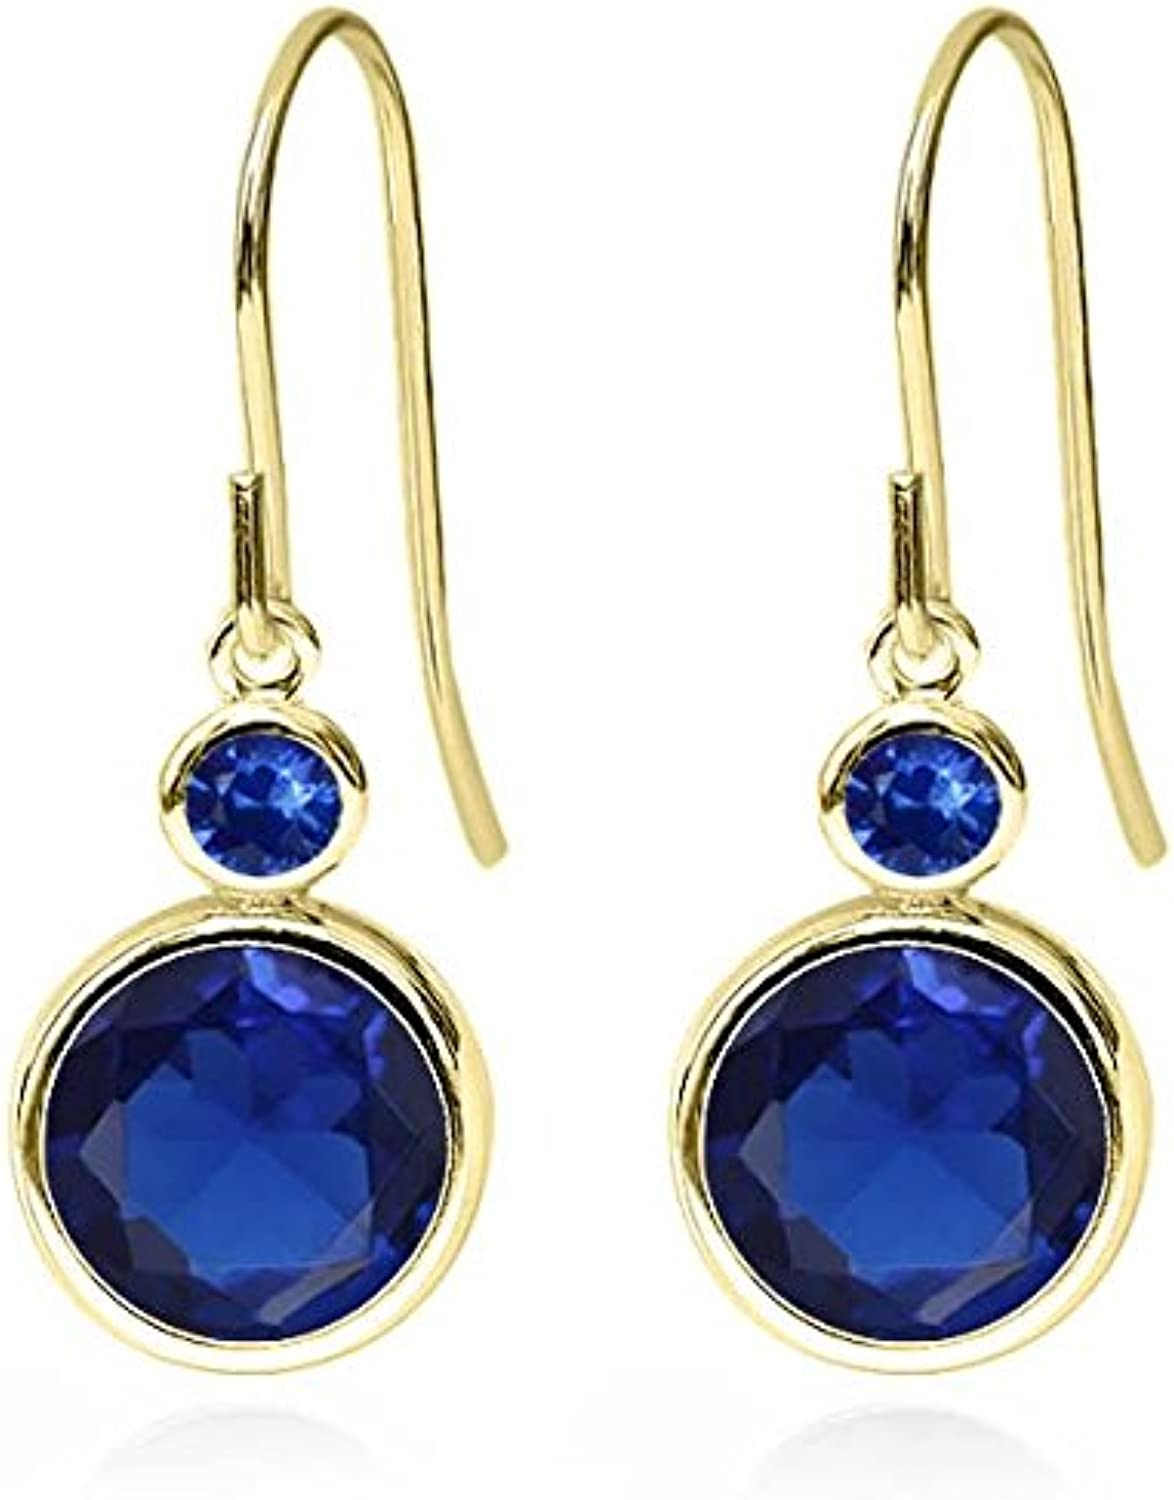 4.50 Ct Round bluee Simulated Sapphire bluee Sapphire 14K Yellow gold Earrings